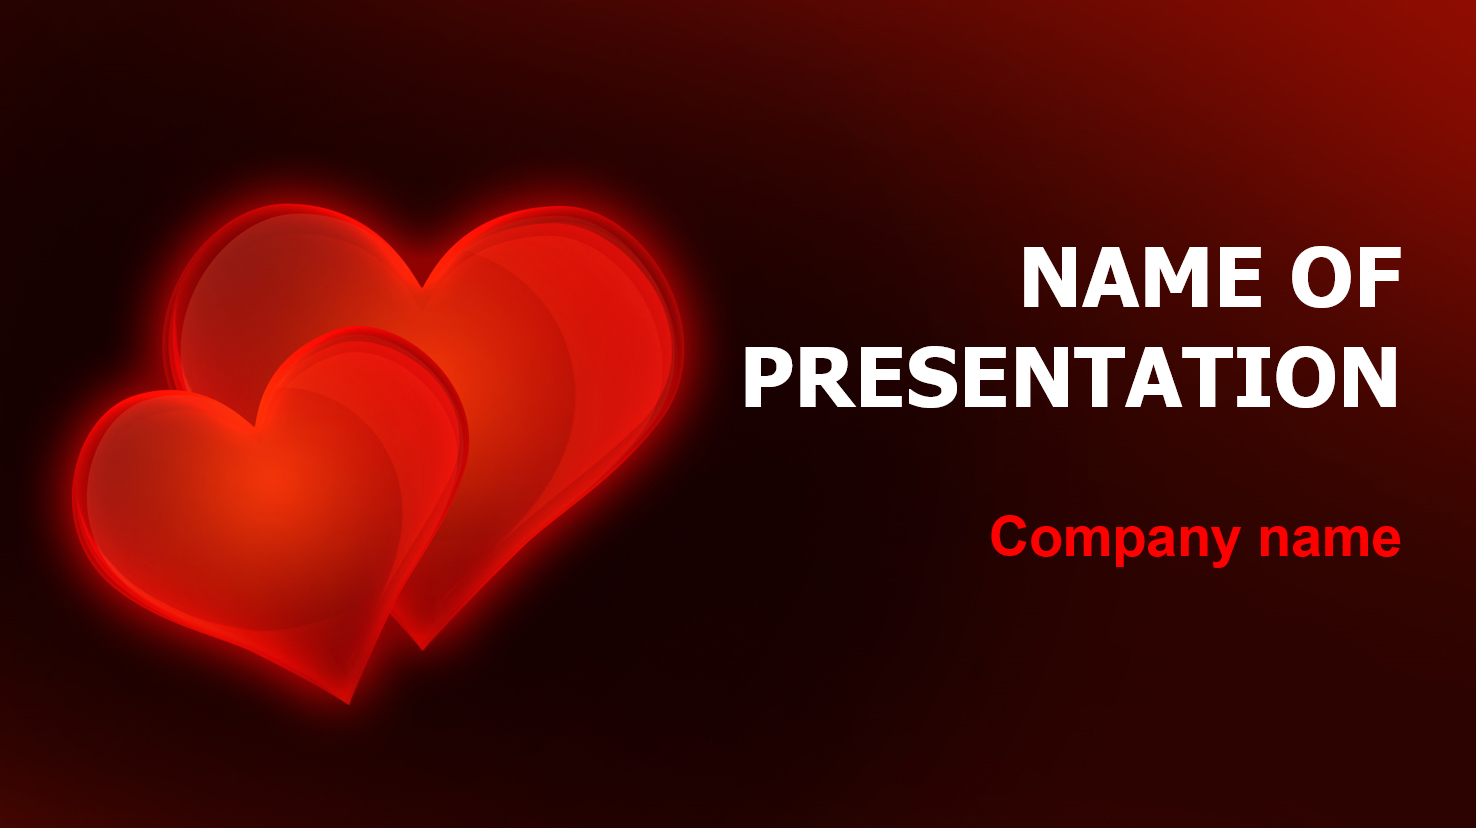 Download free free valentines love powerpoint theme for presentation free valentines love powerpoint theme toneelgroepblik Choice Image